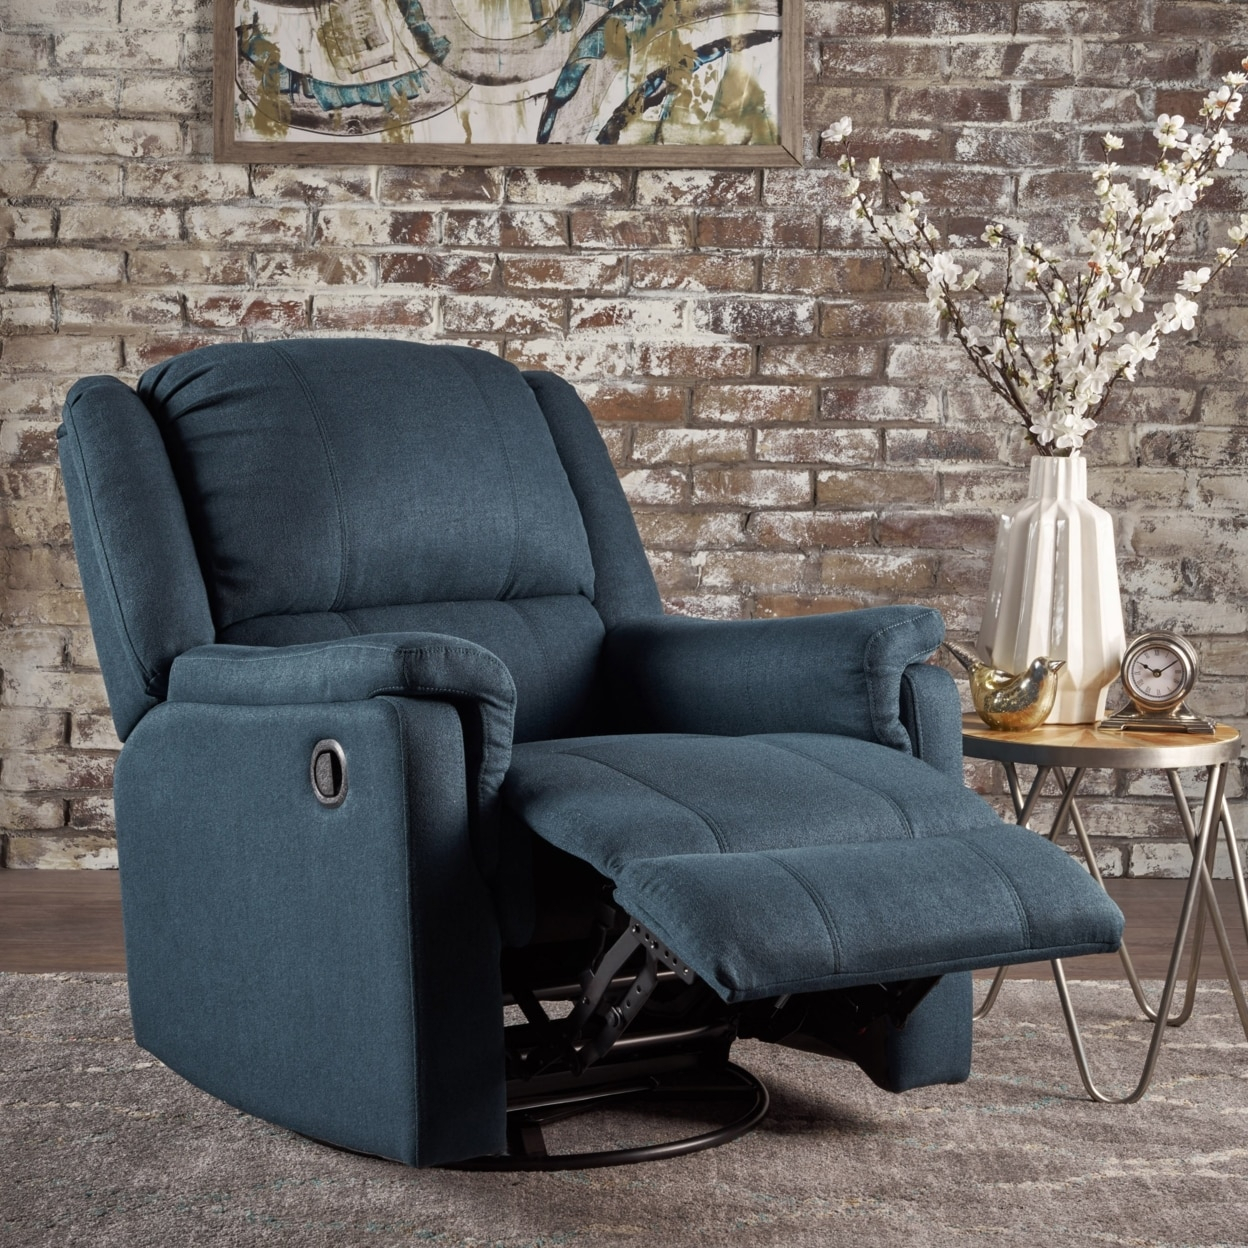 Jemma Tufted Fabric Swivel Gliding Recliner Chair In Living Room Intended For Decker Ii Fabric Swivel Glider Recliners (Image 15 of 25)